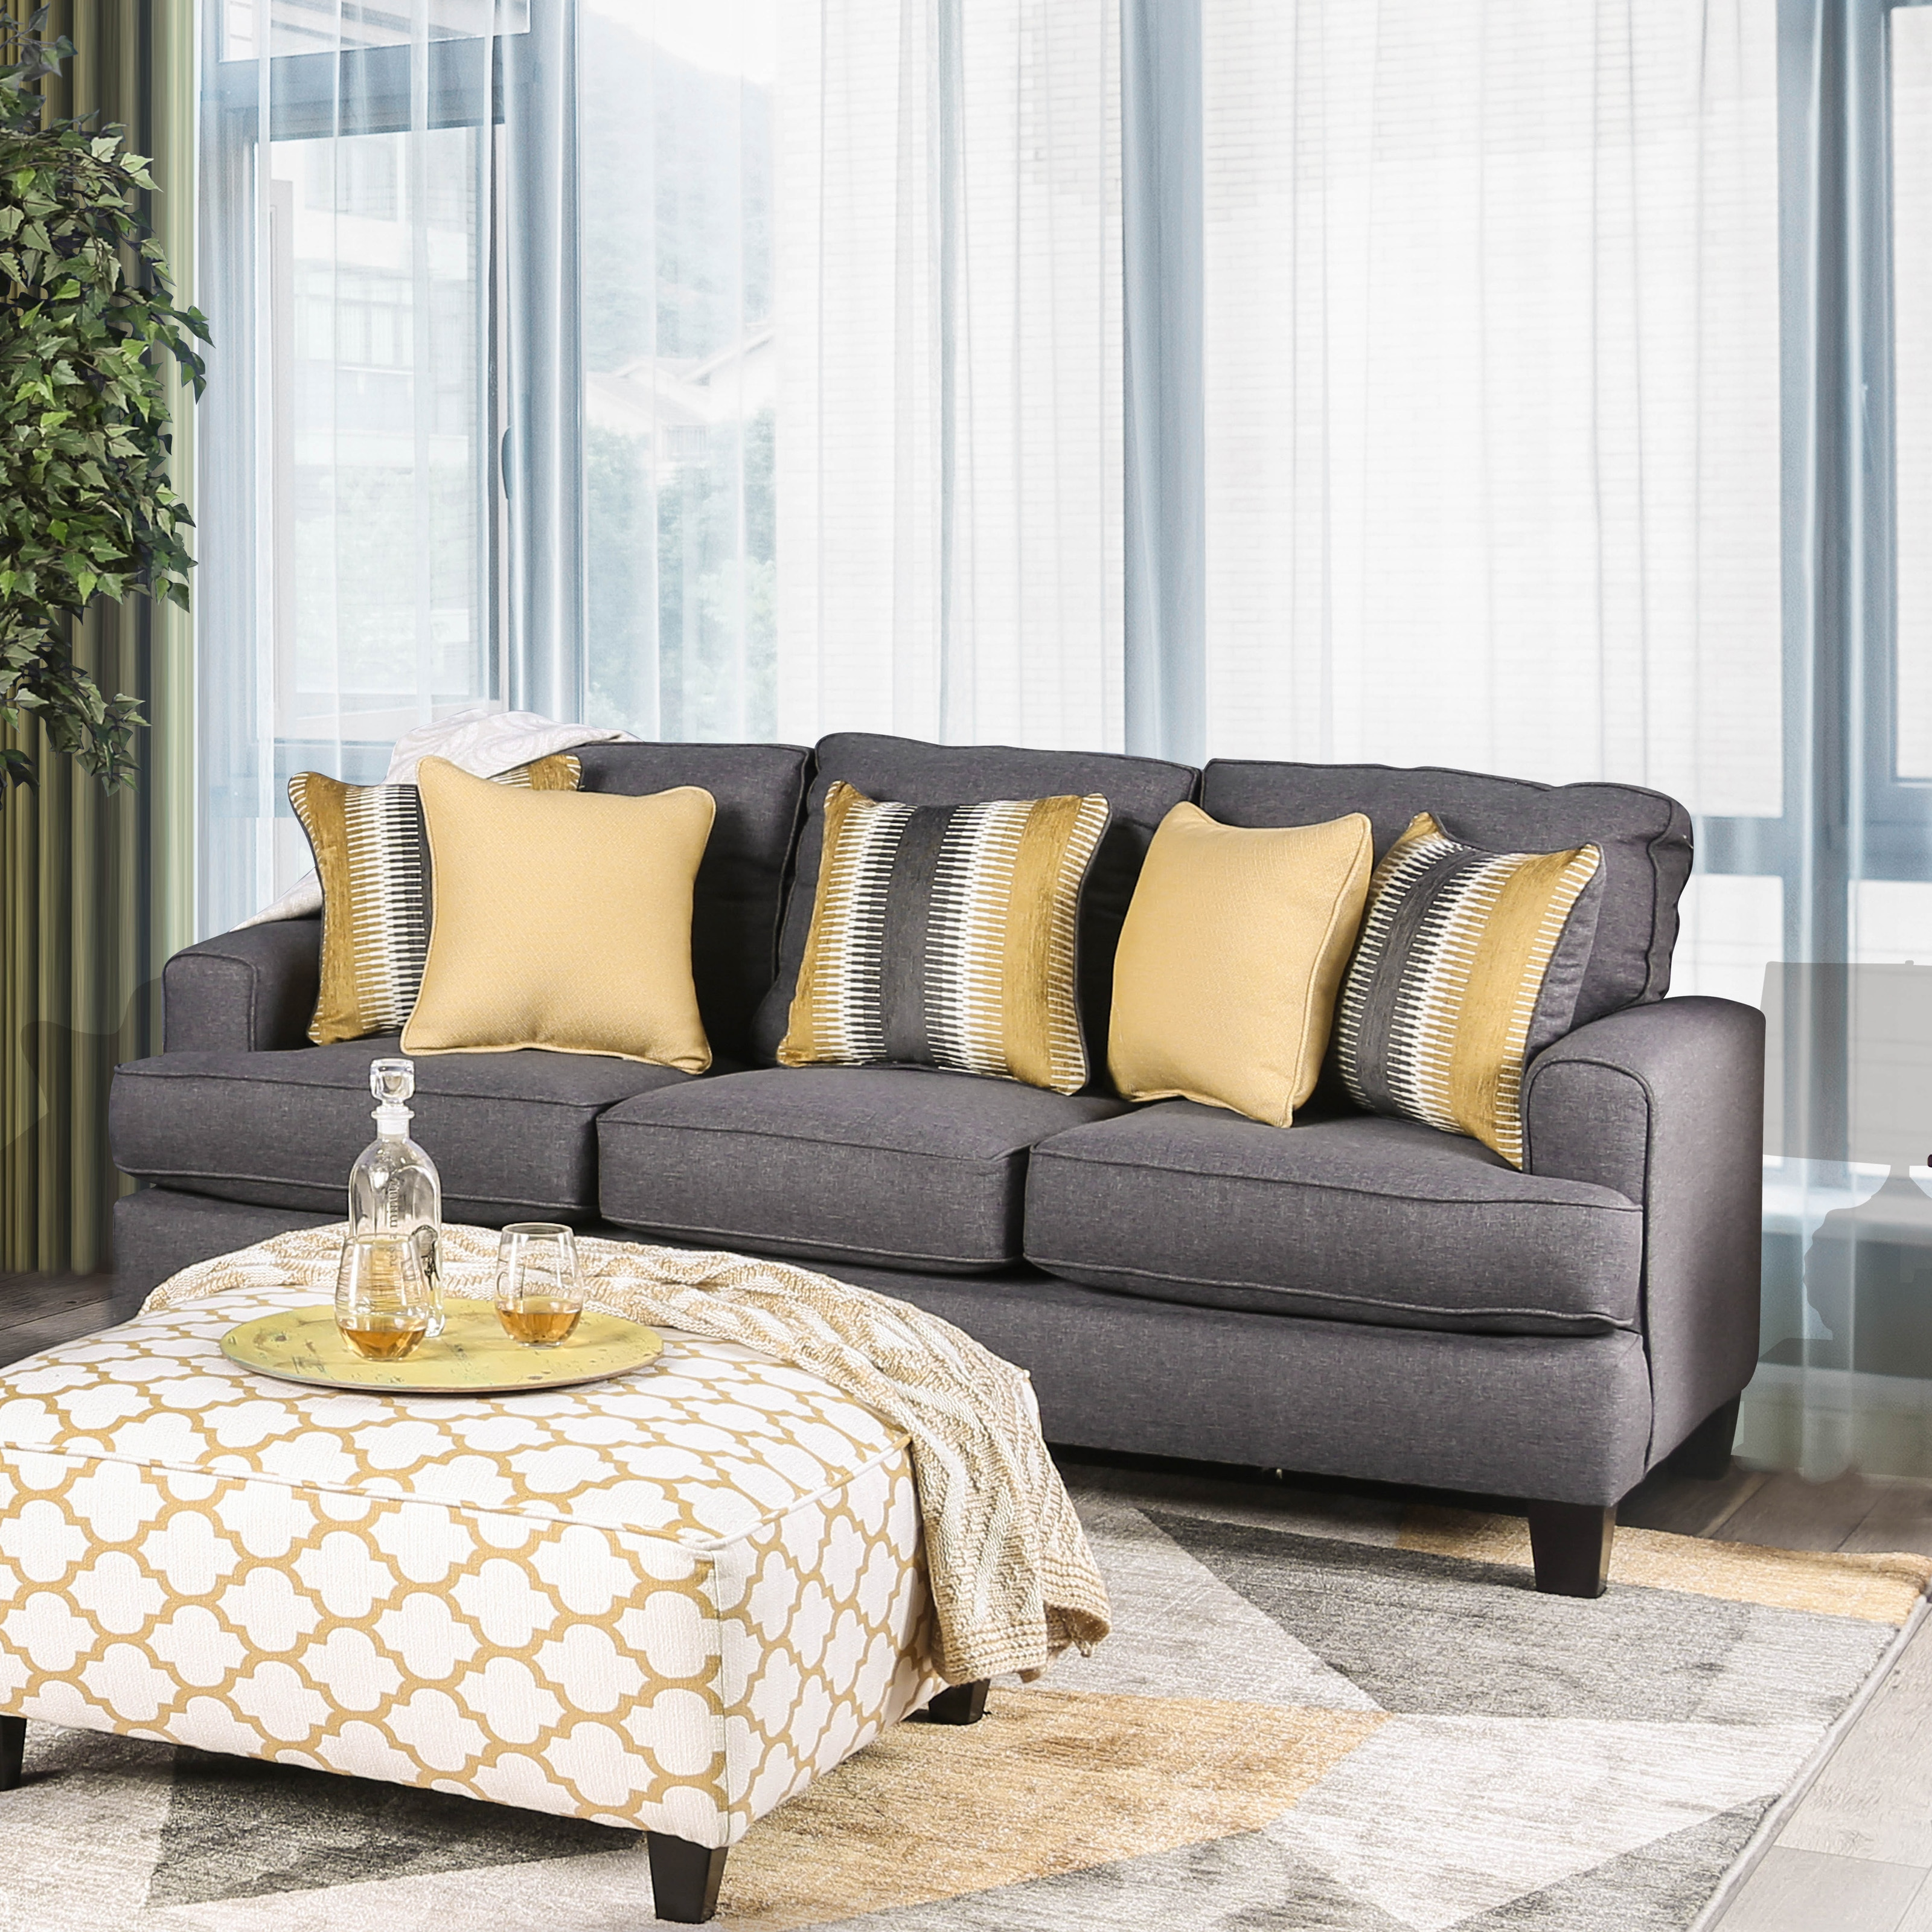 Miraculous Tristan Contemporary Grey 2 Piece Sofa Set By Foa Pdpeps Interior Chair Design Pdpepsorg